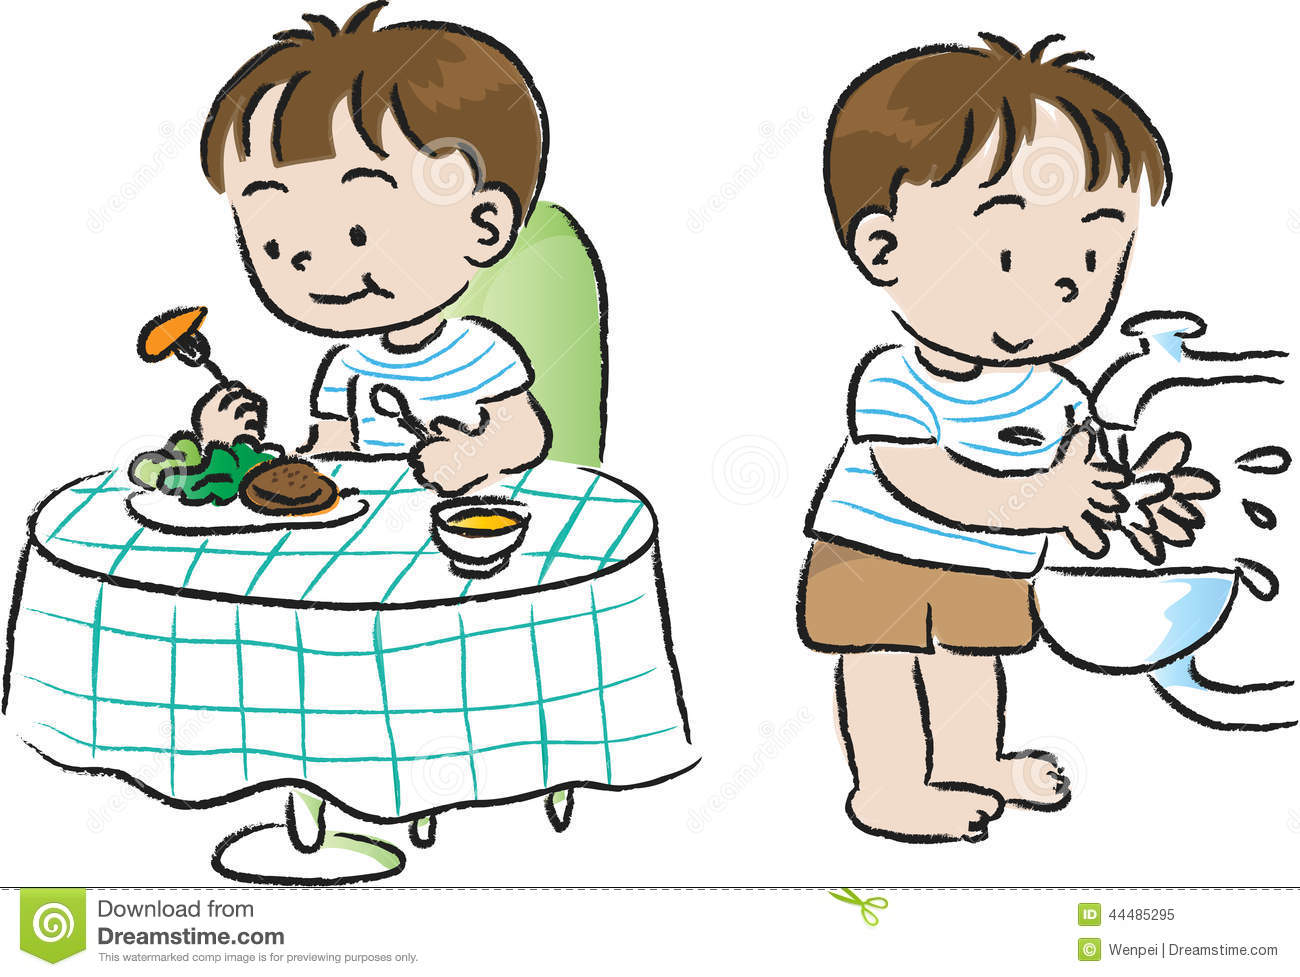 Clipart kids washing hands image royalty free library Clipart kids washing hands - ClipartFest image royalty free library